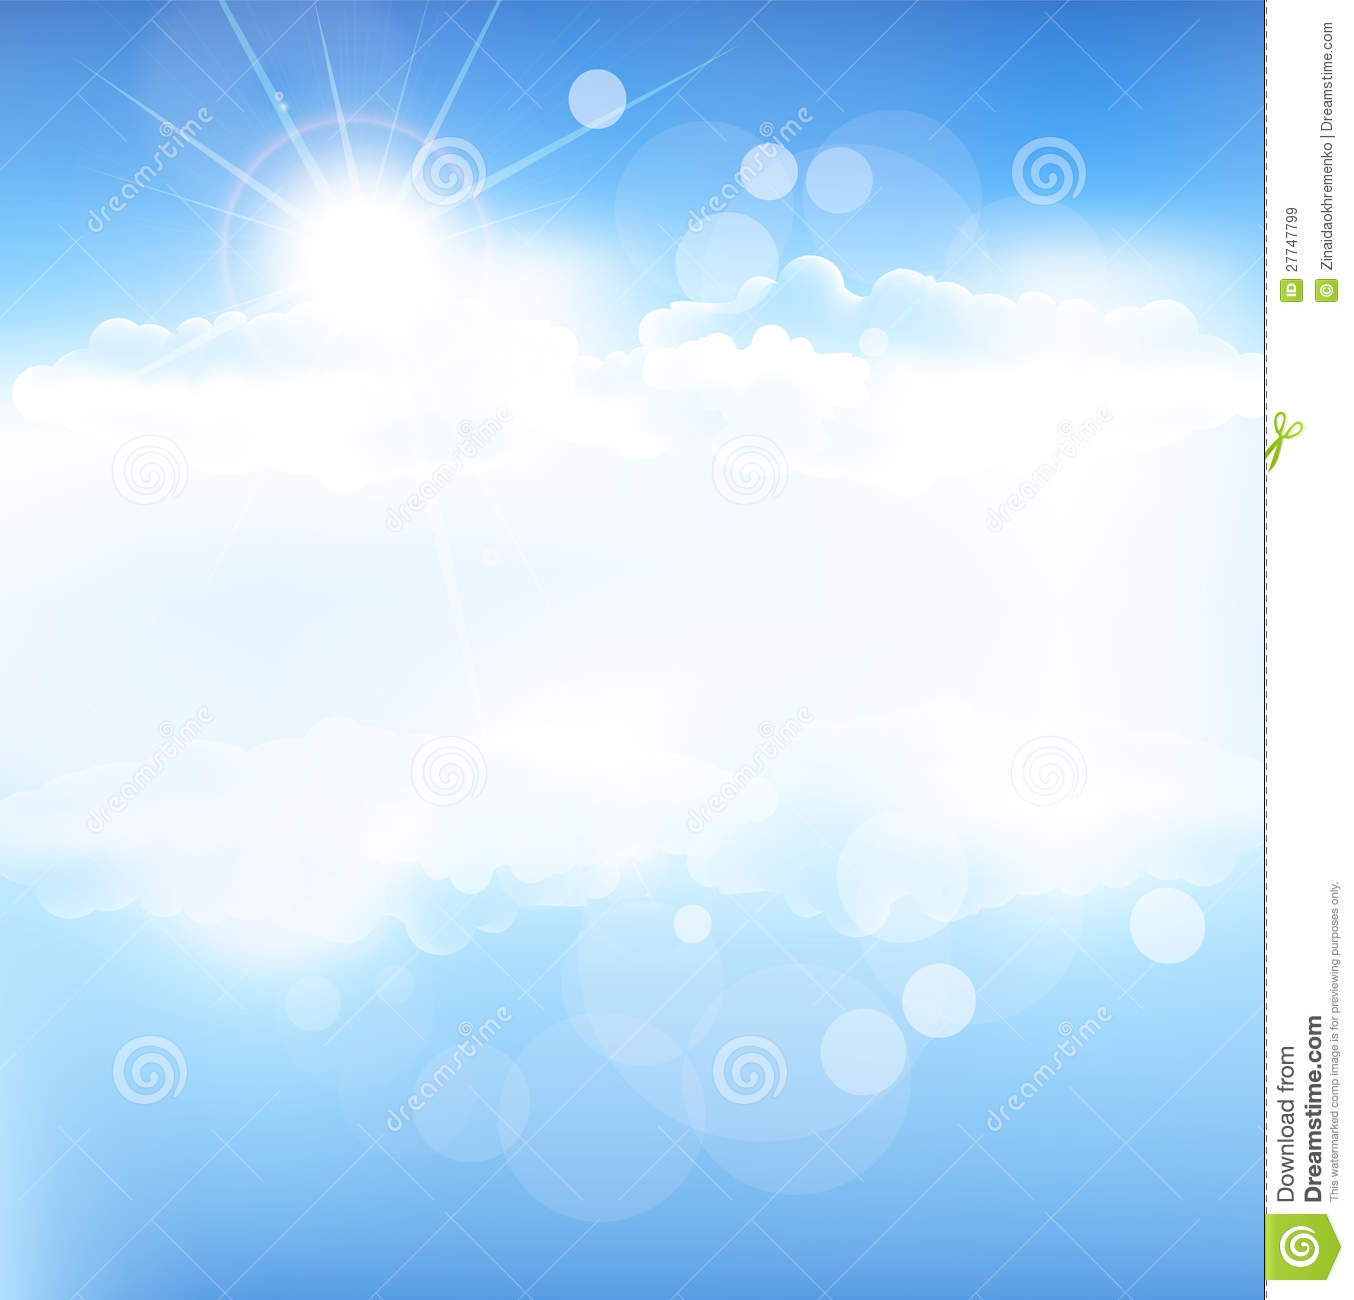 sky blue background vector - photo #3